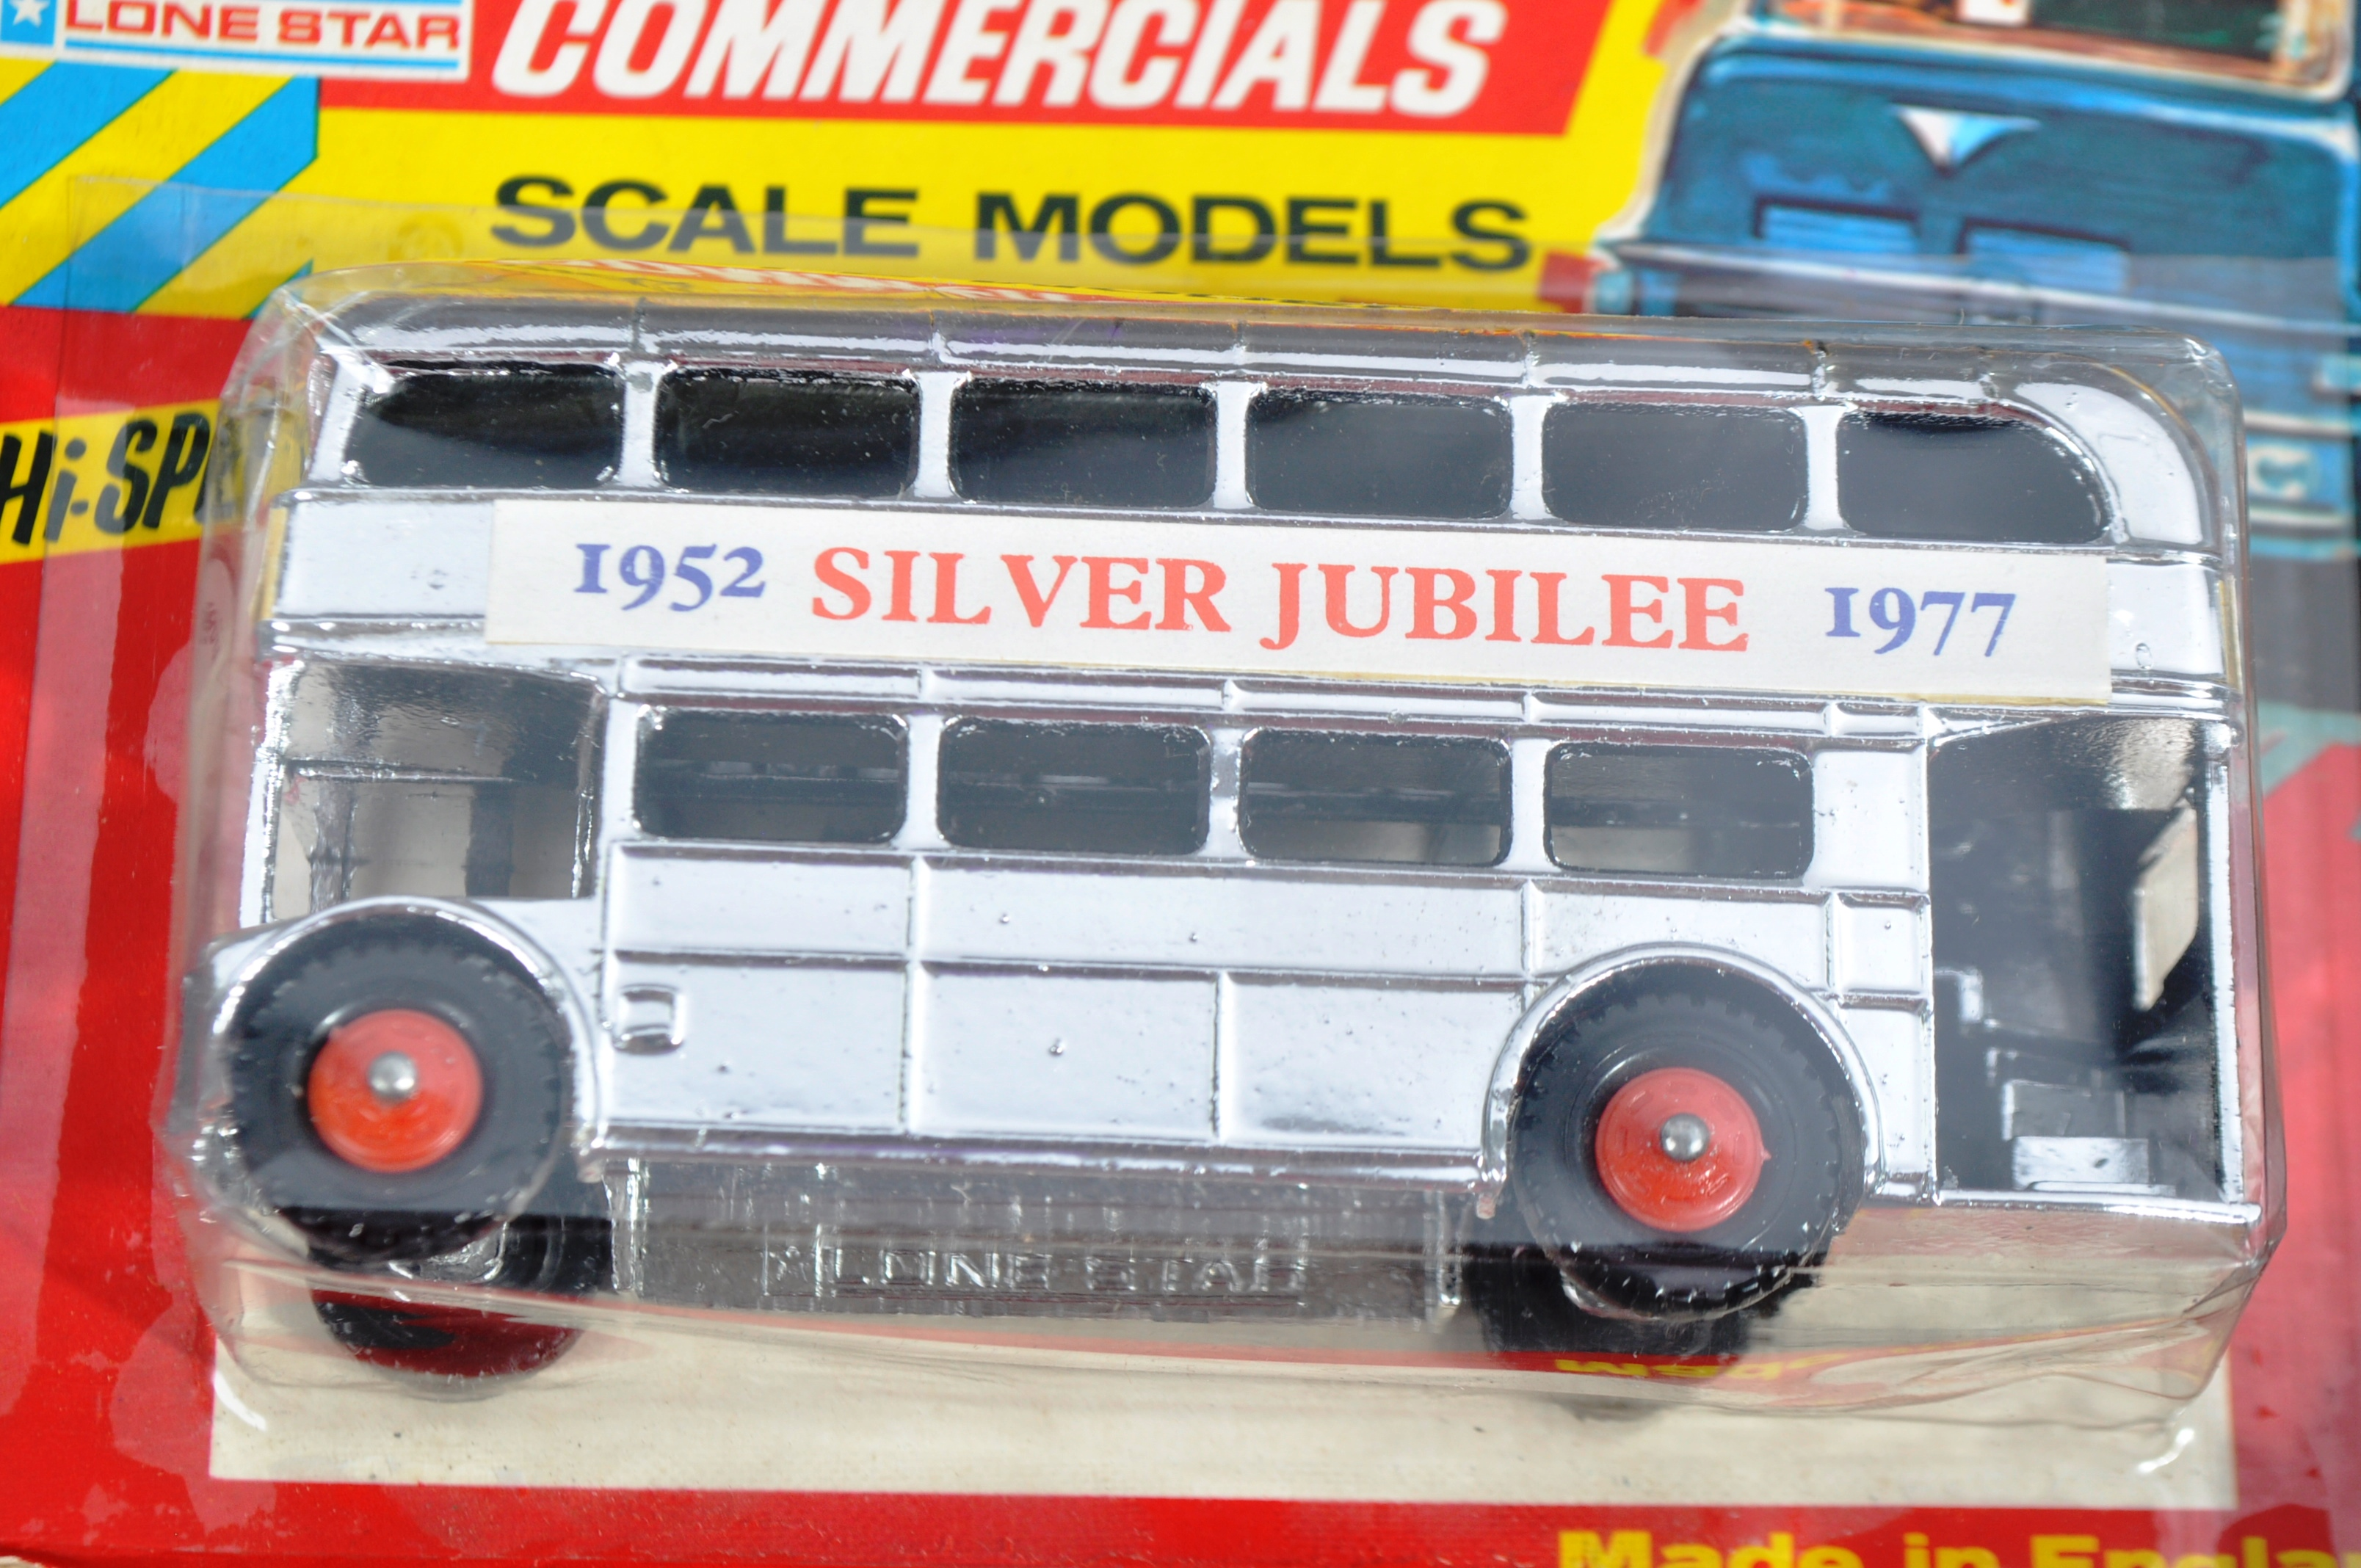 COLLECTION OF X5 ORIGINAL VINTAGE LONE STAR DIECAST MODELS - Image 3 of 6